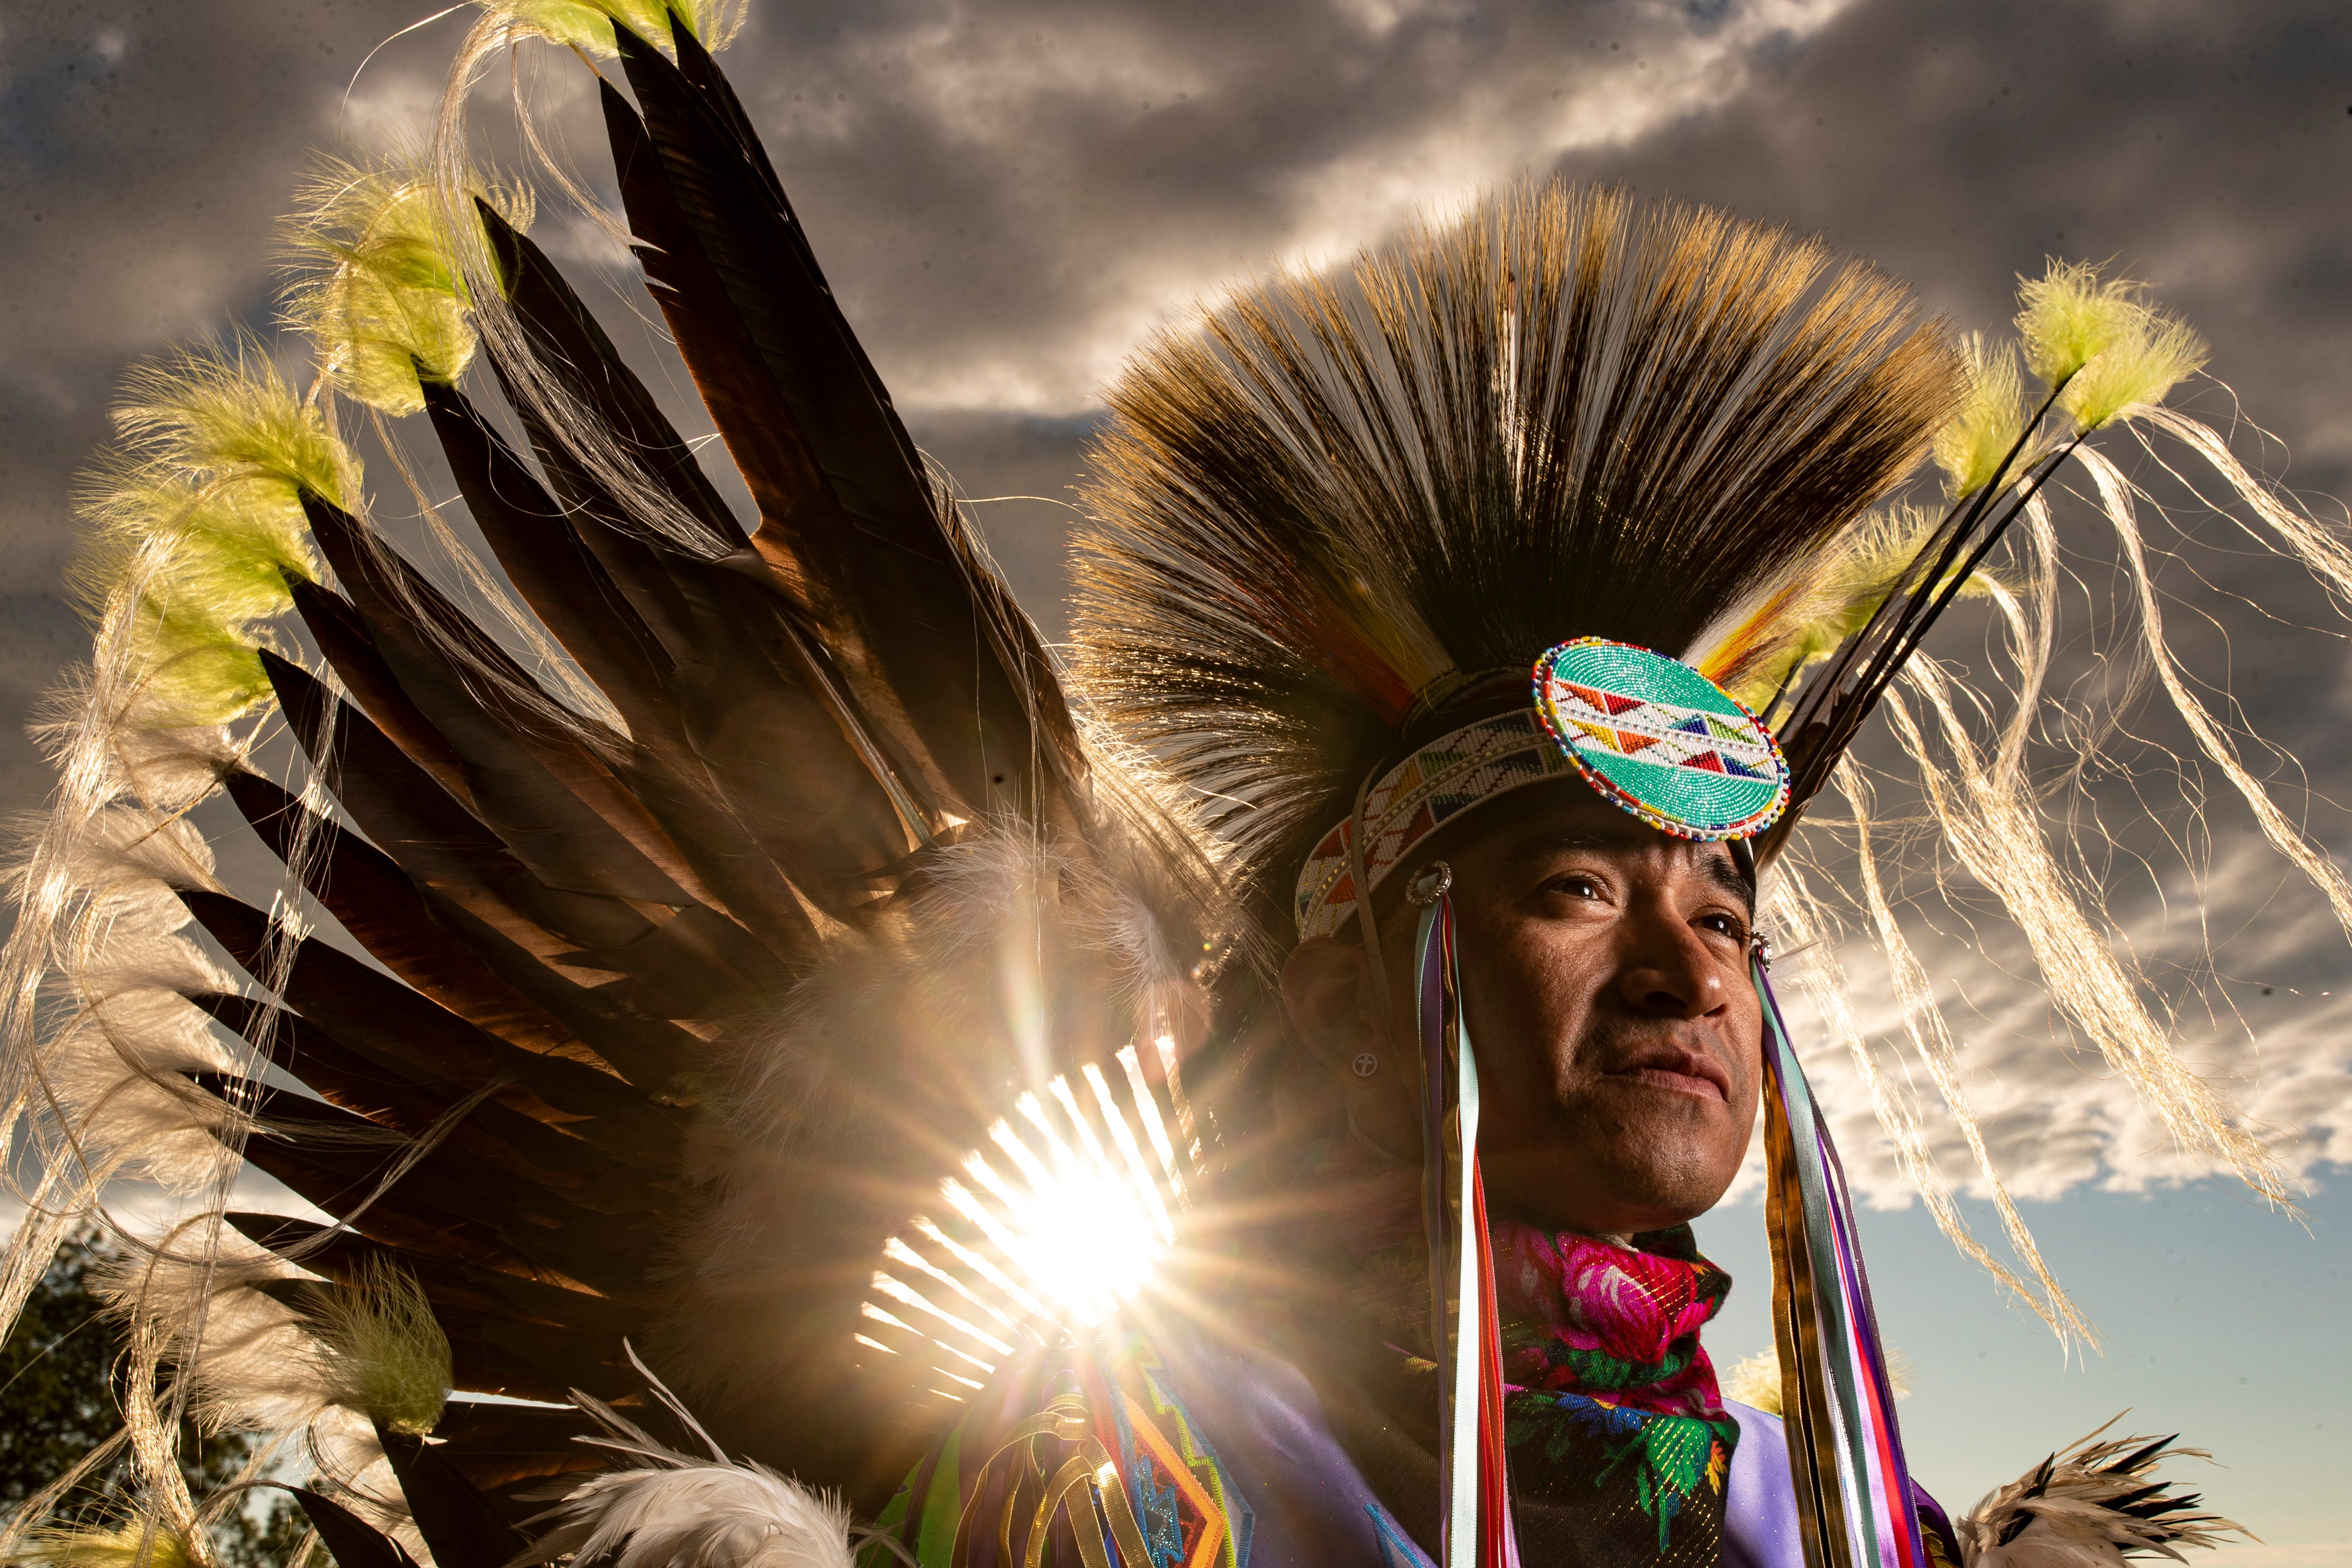 Jazz is teaching his children the power of dance in connecting to their Native American culture and identity, something he considers critical in his addiction recovery.